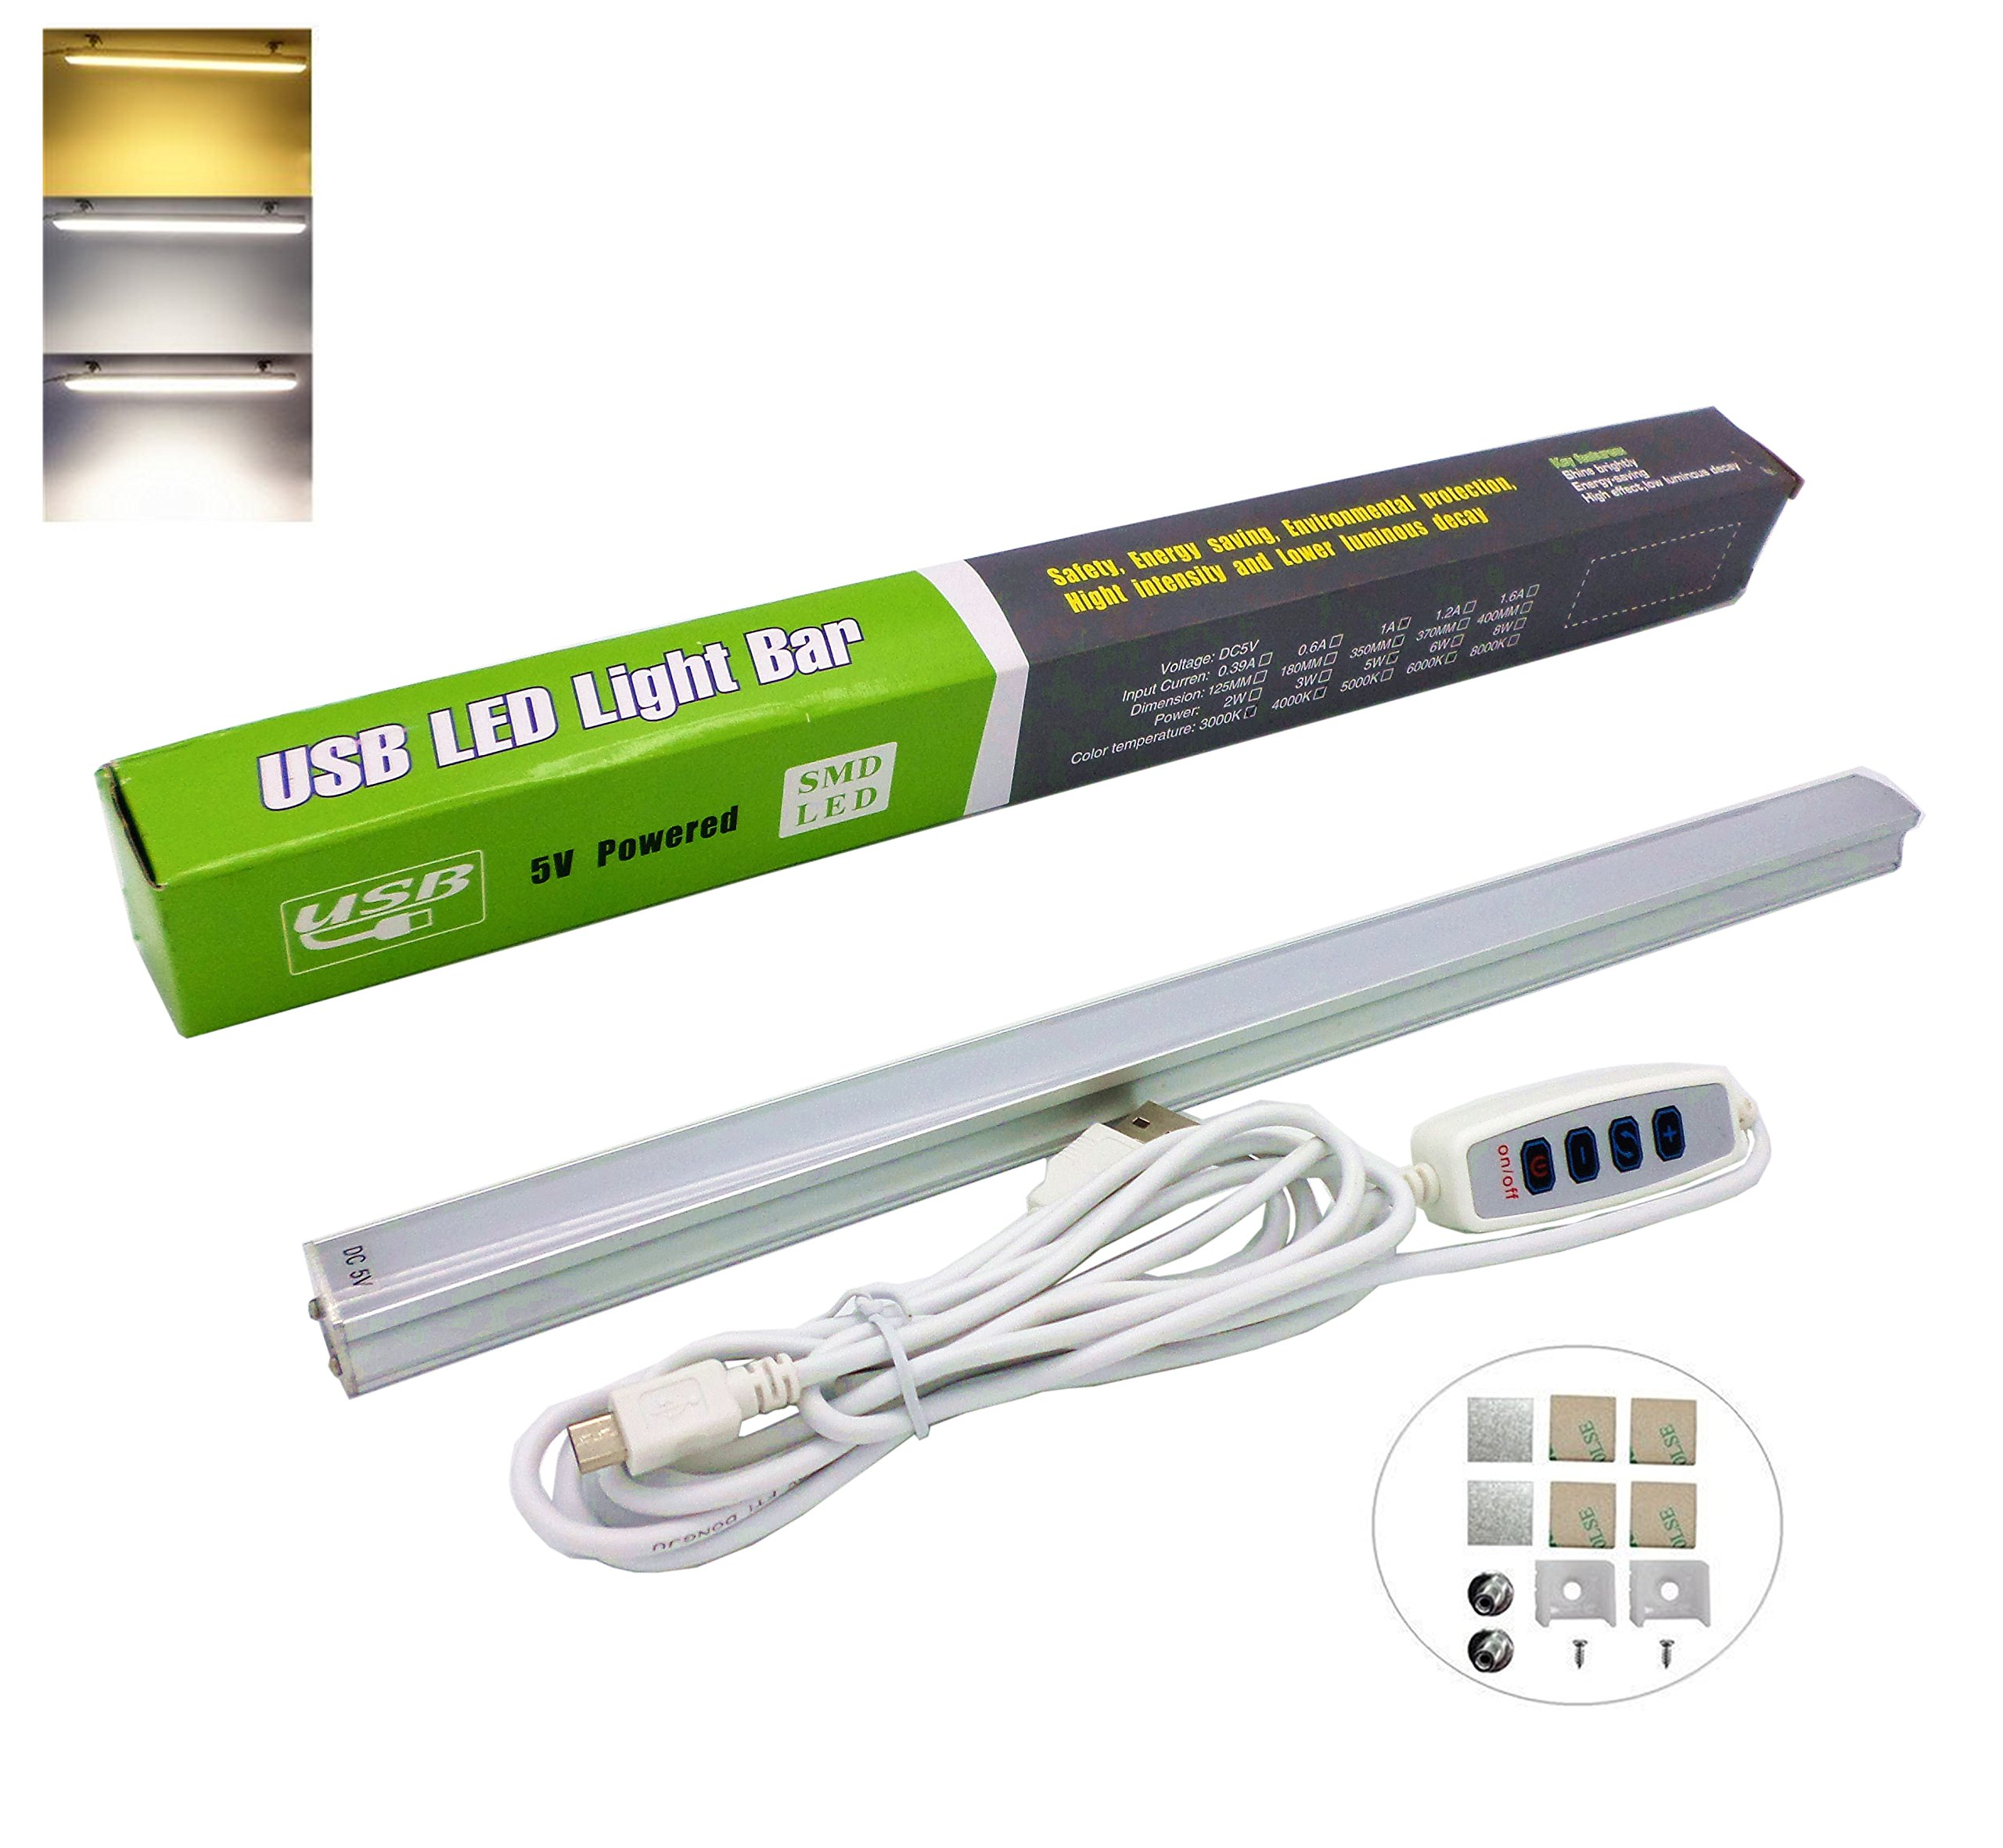 UNOSEKS Dimmable USB LED Under Cabinet Lighting,Eye-care Desk Lighting,Bookcase Lighting - Dim from Warm White to Cold White - 13 Inch, Adhesive and Magnet Mounted Accessories Included